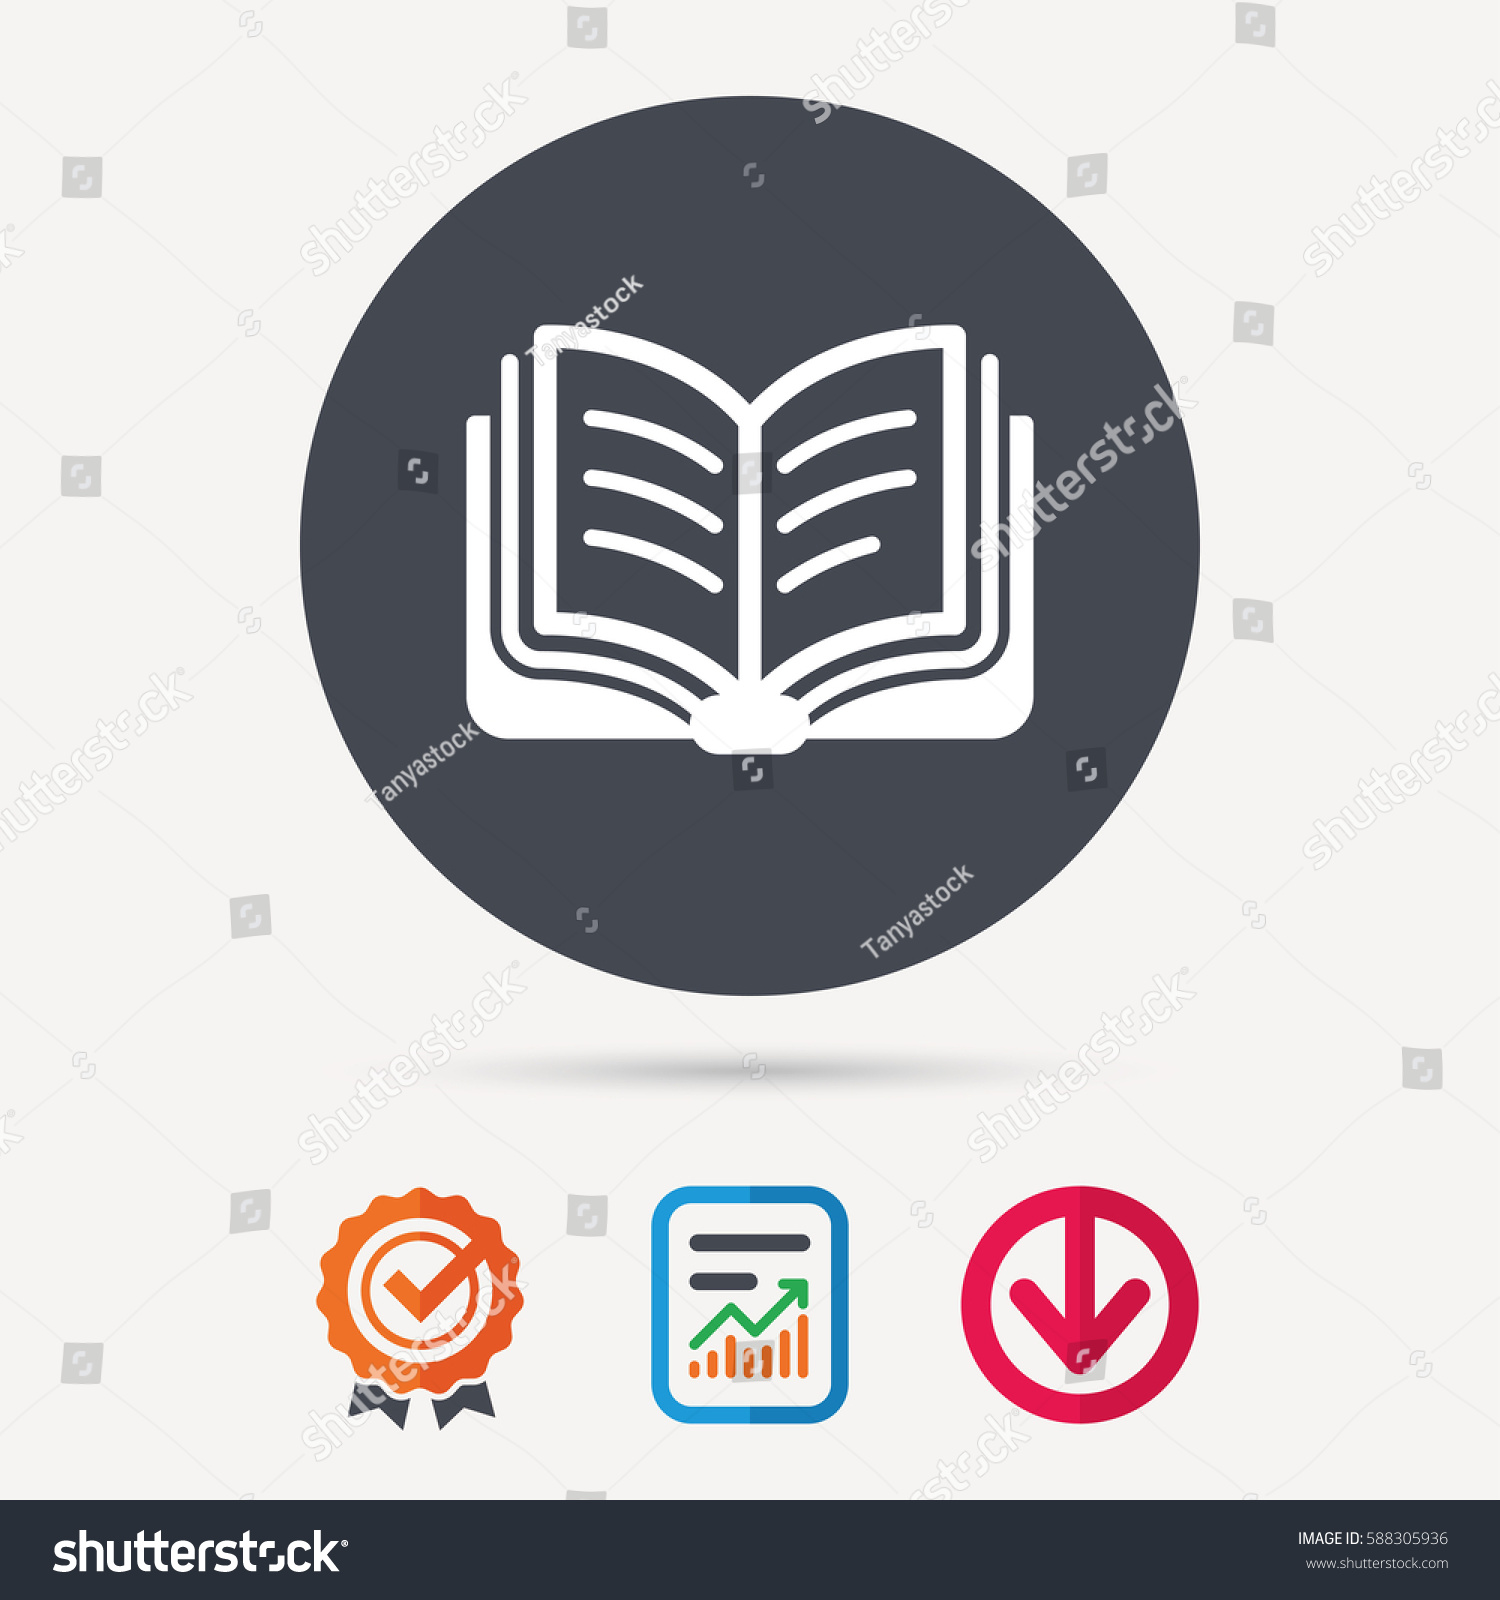 book icon study literature sign education stock vector  study literature sign education textbook symbol report document award medal